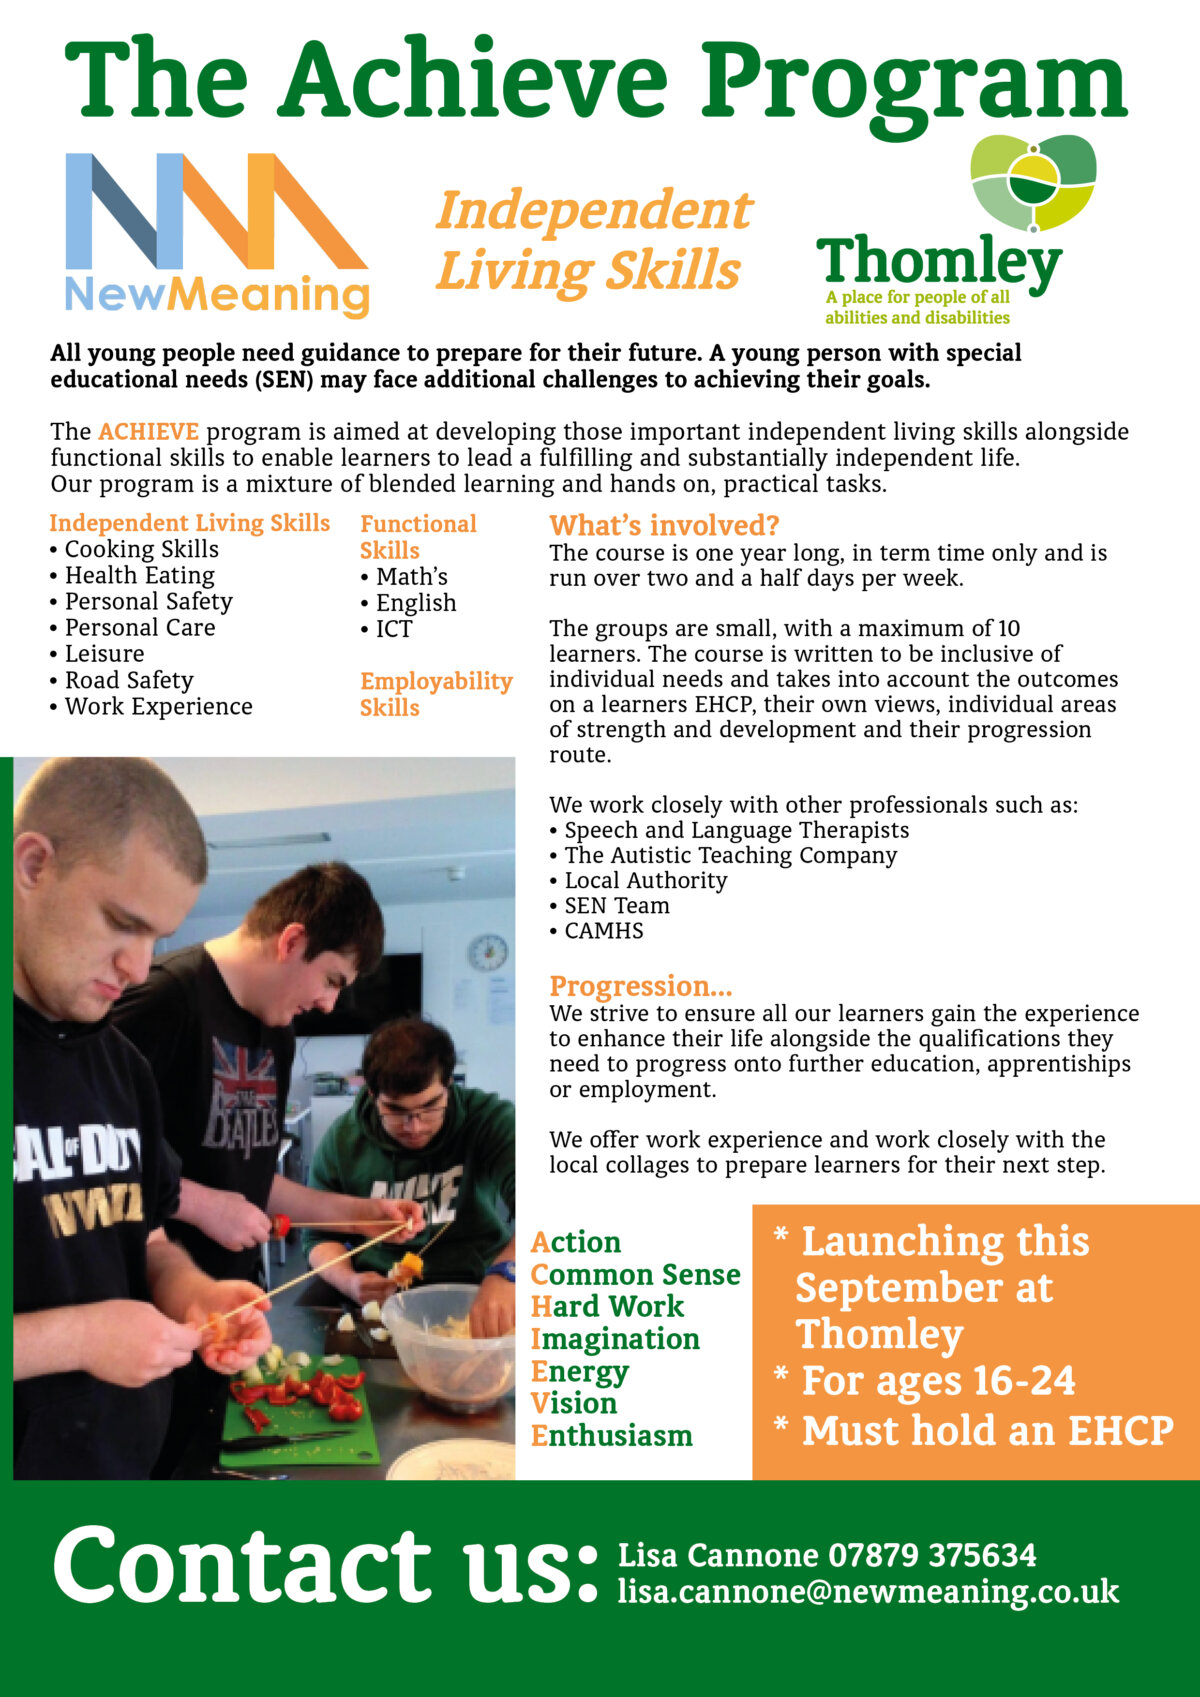 Lifeskills For 18-24 Year Olds – Starting This September At Thomley…